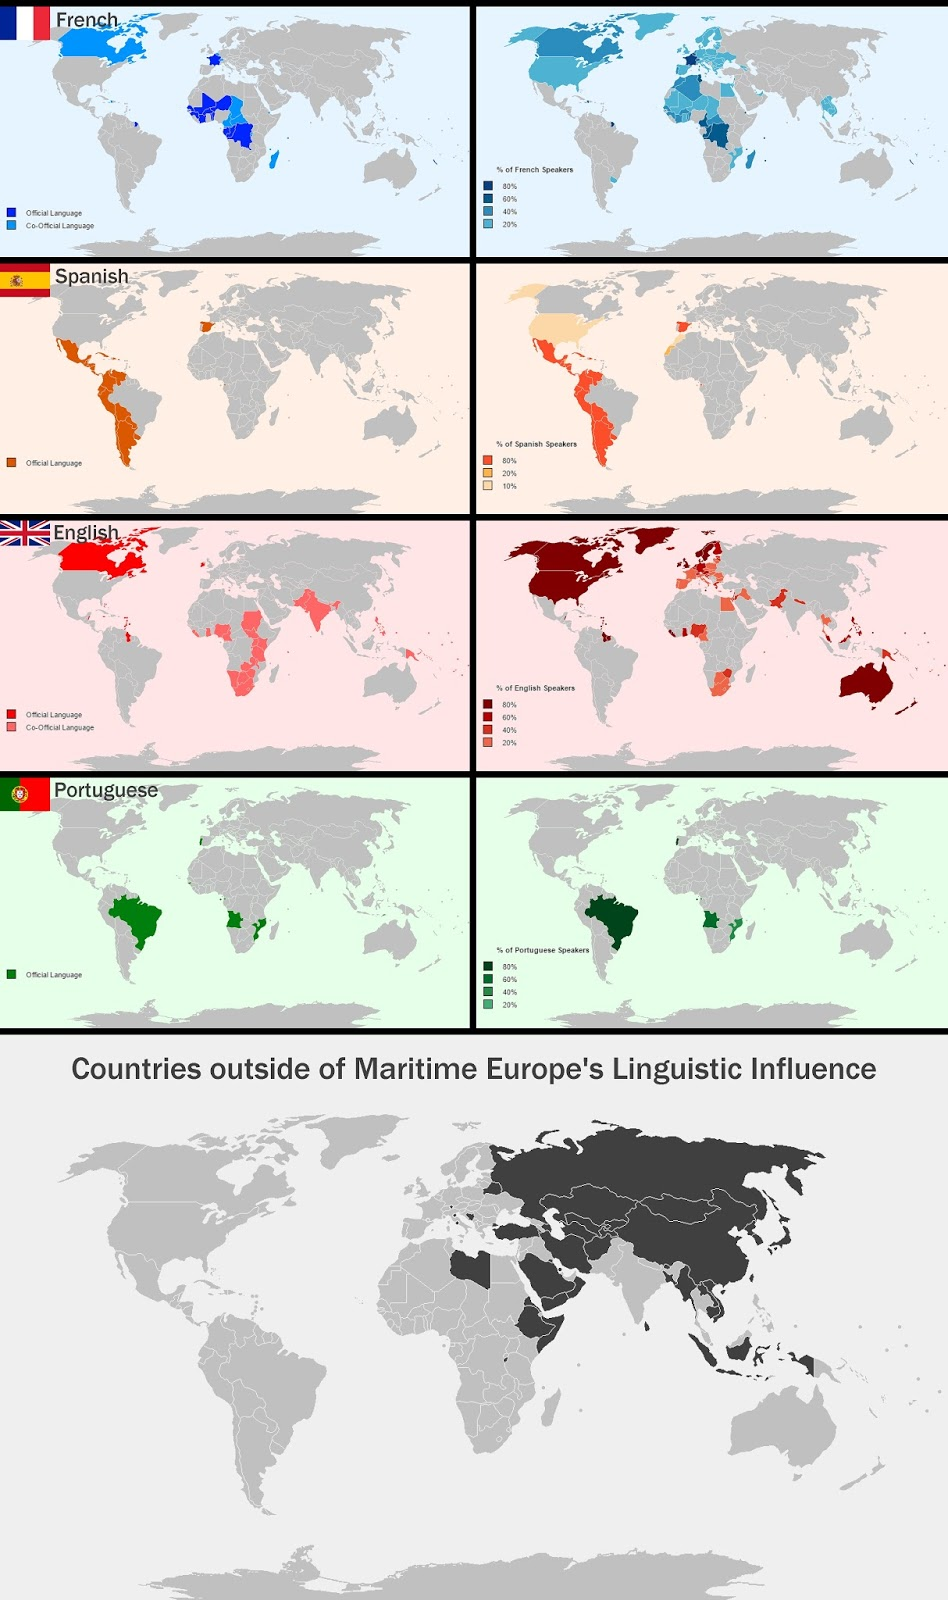 Maritime Europe's Linguistic Sphere of Infuence